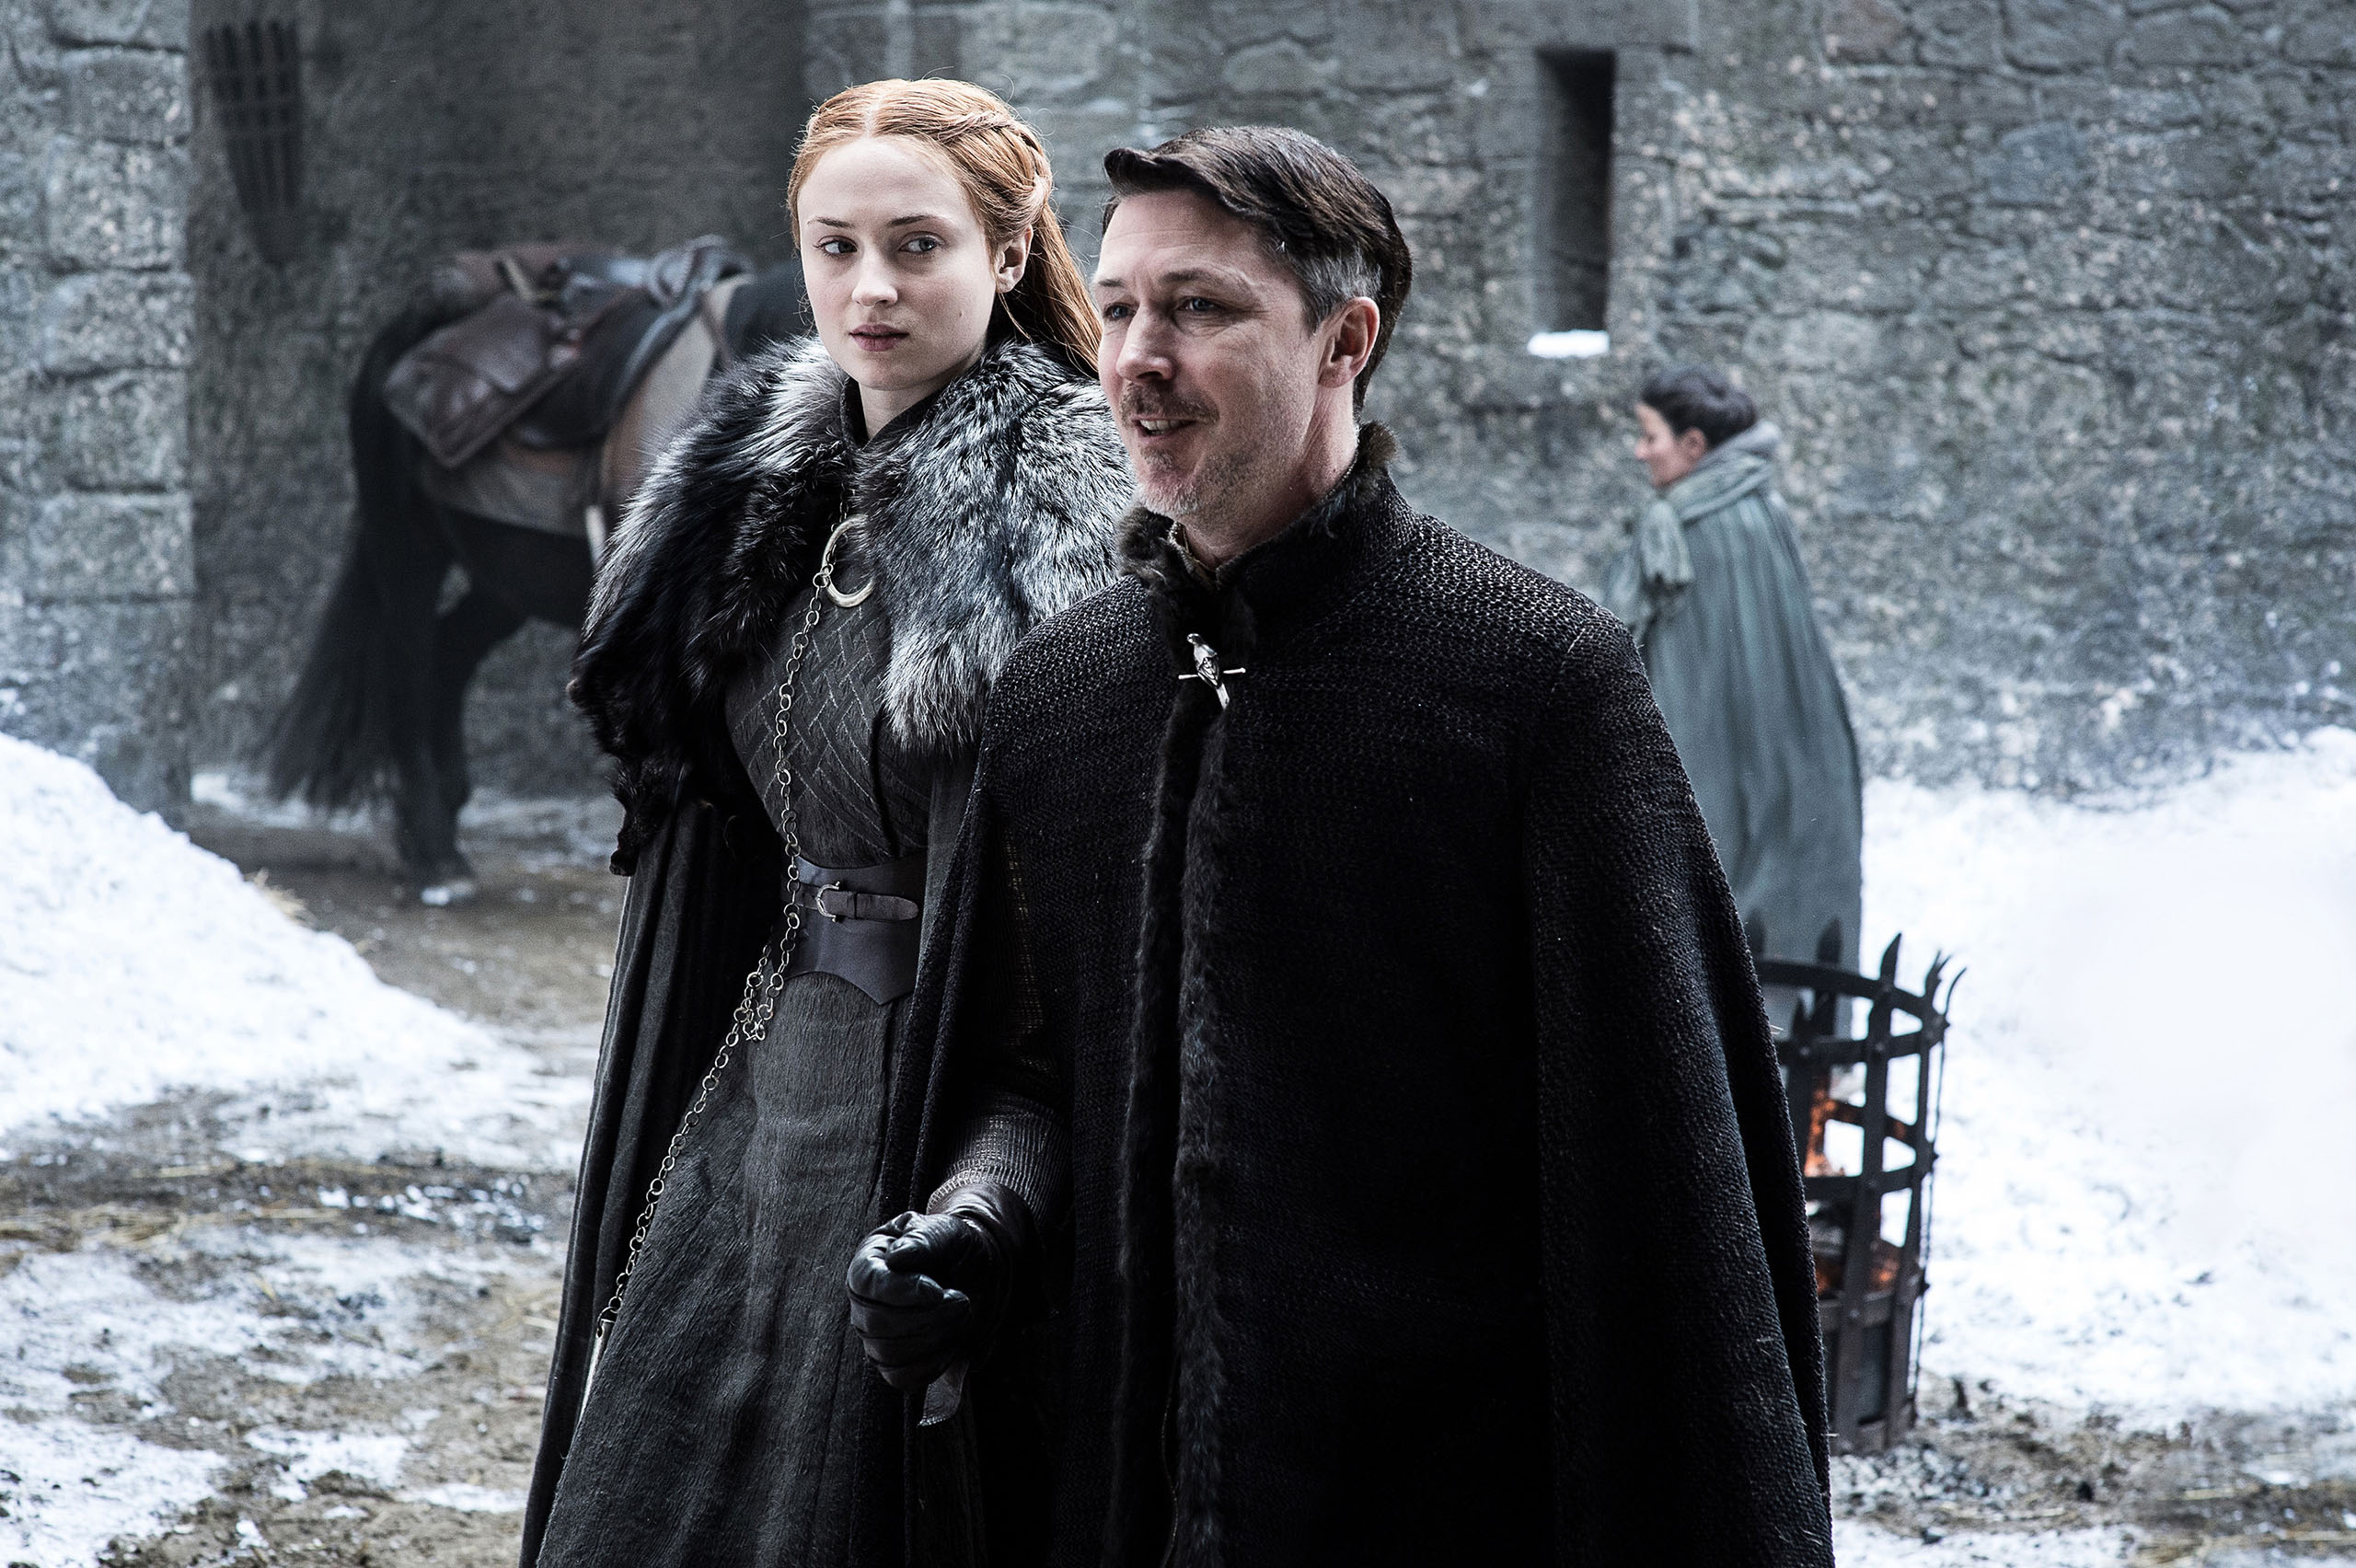 Sophie Turner and Aiden Gillen in Game of Thrones